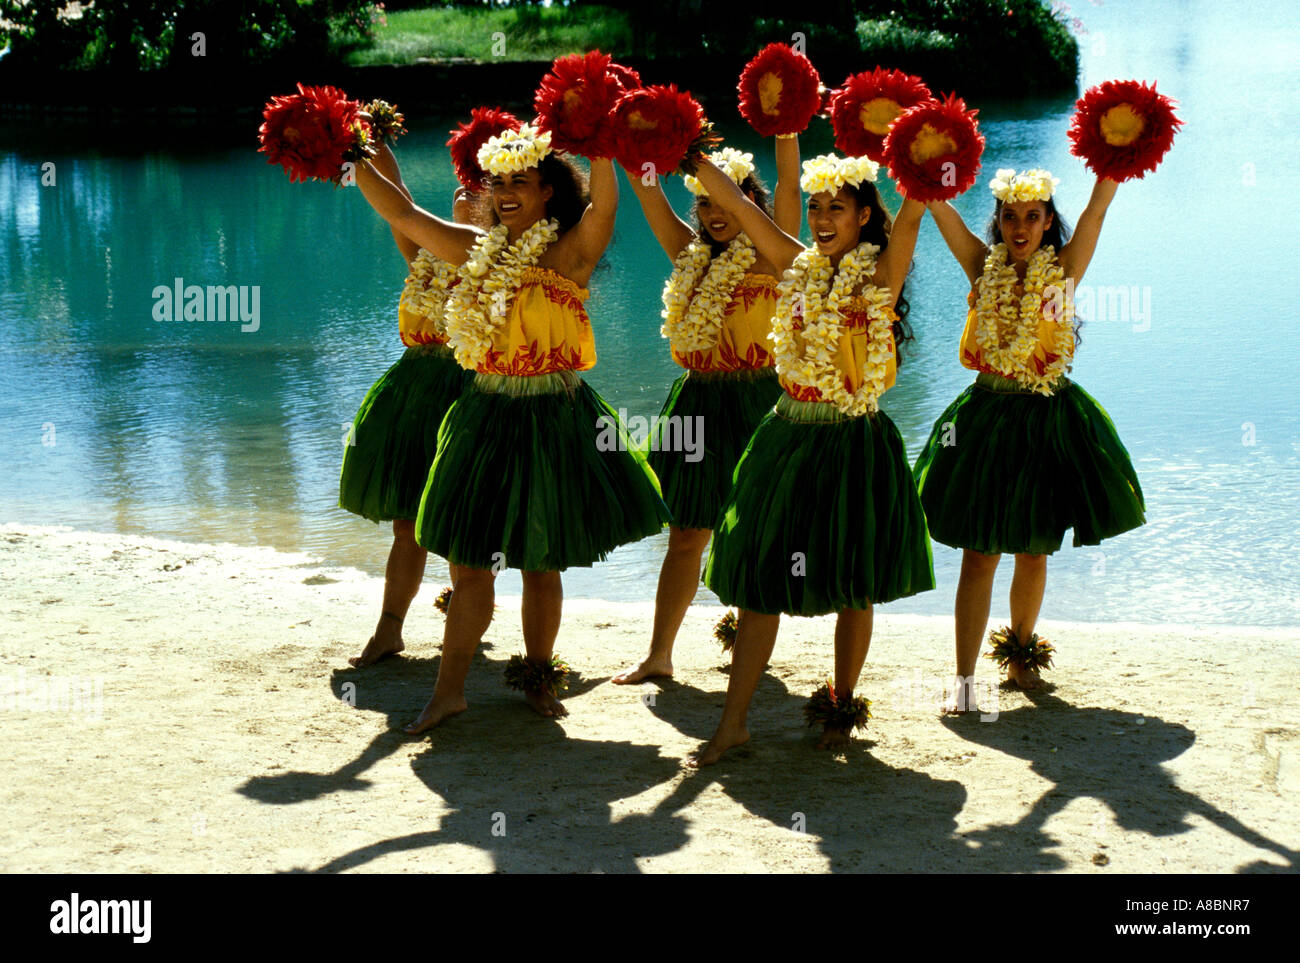 Hawaii Oahu Hula dancers - Stock Image